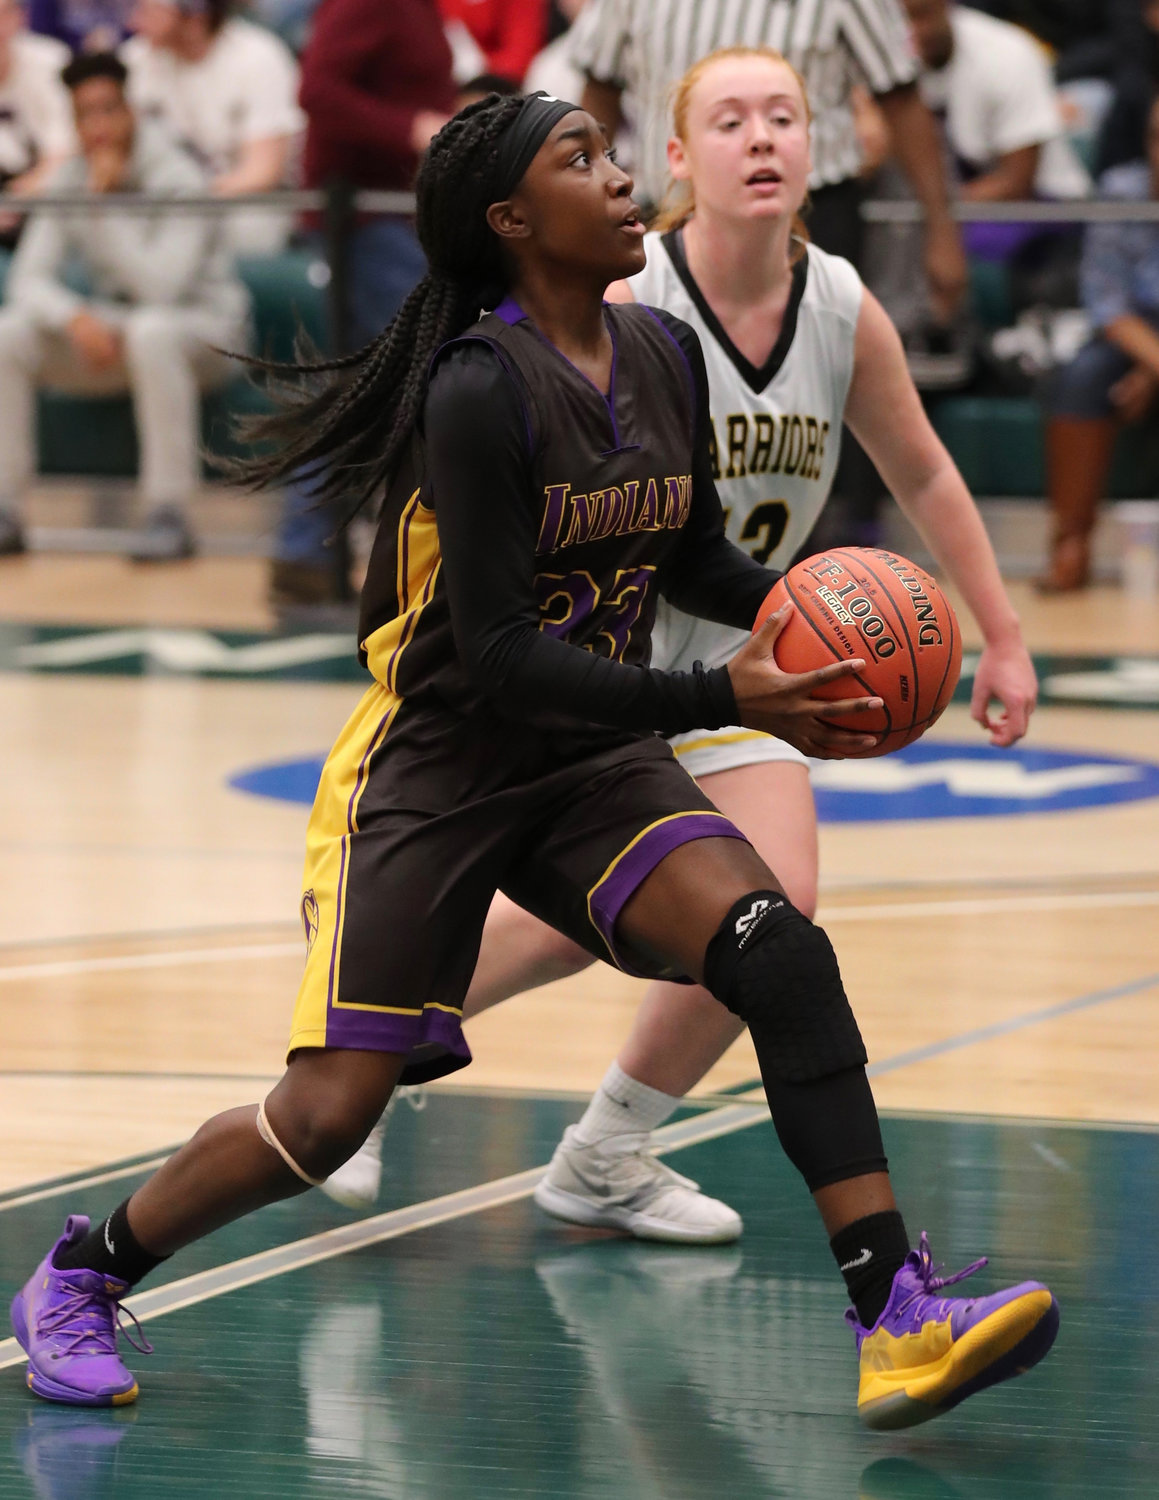 Sewanhaka senior Carly Bolivar dazzled in last Sunday's Nassau Class A final, scoring a game-high 26 points to lead a 62-46 win over Wantagh at Farmingdale State College.